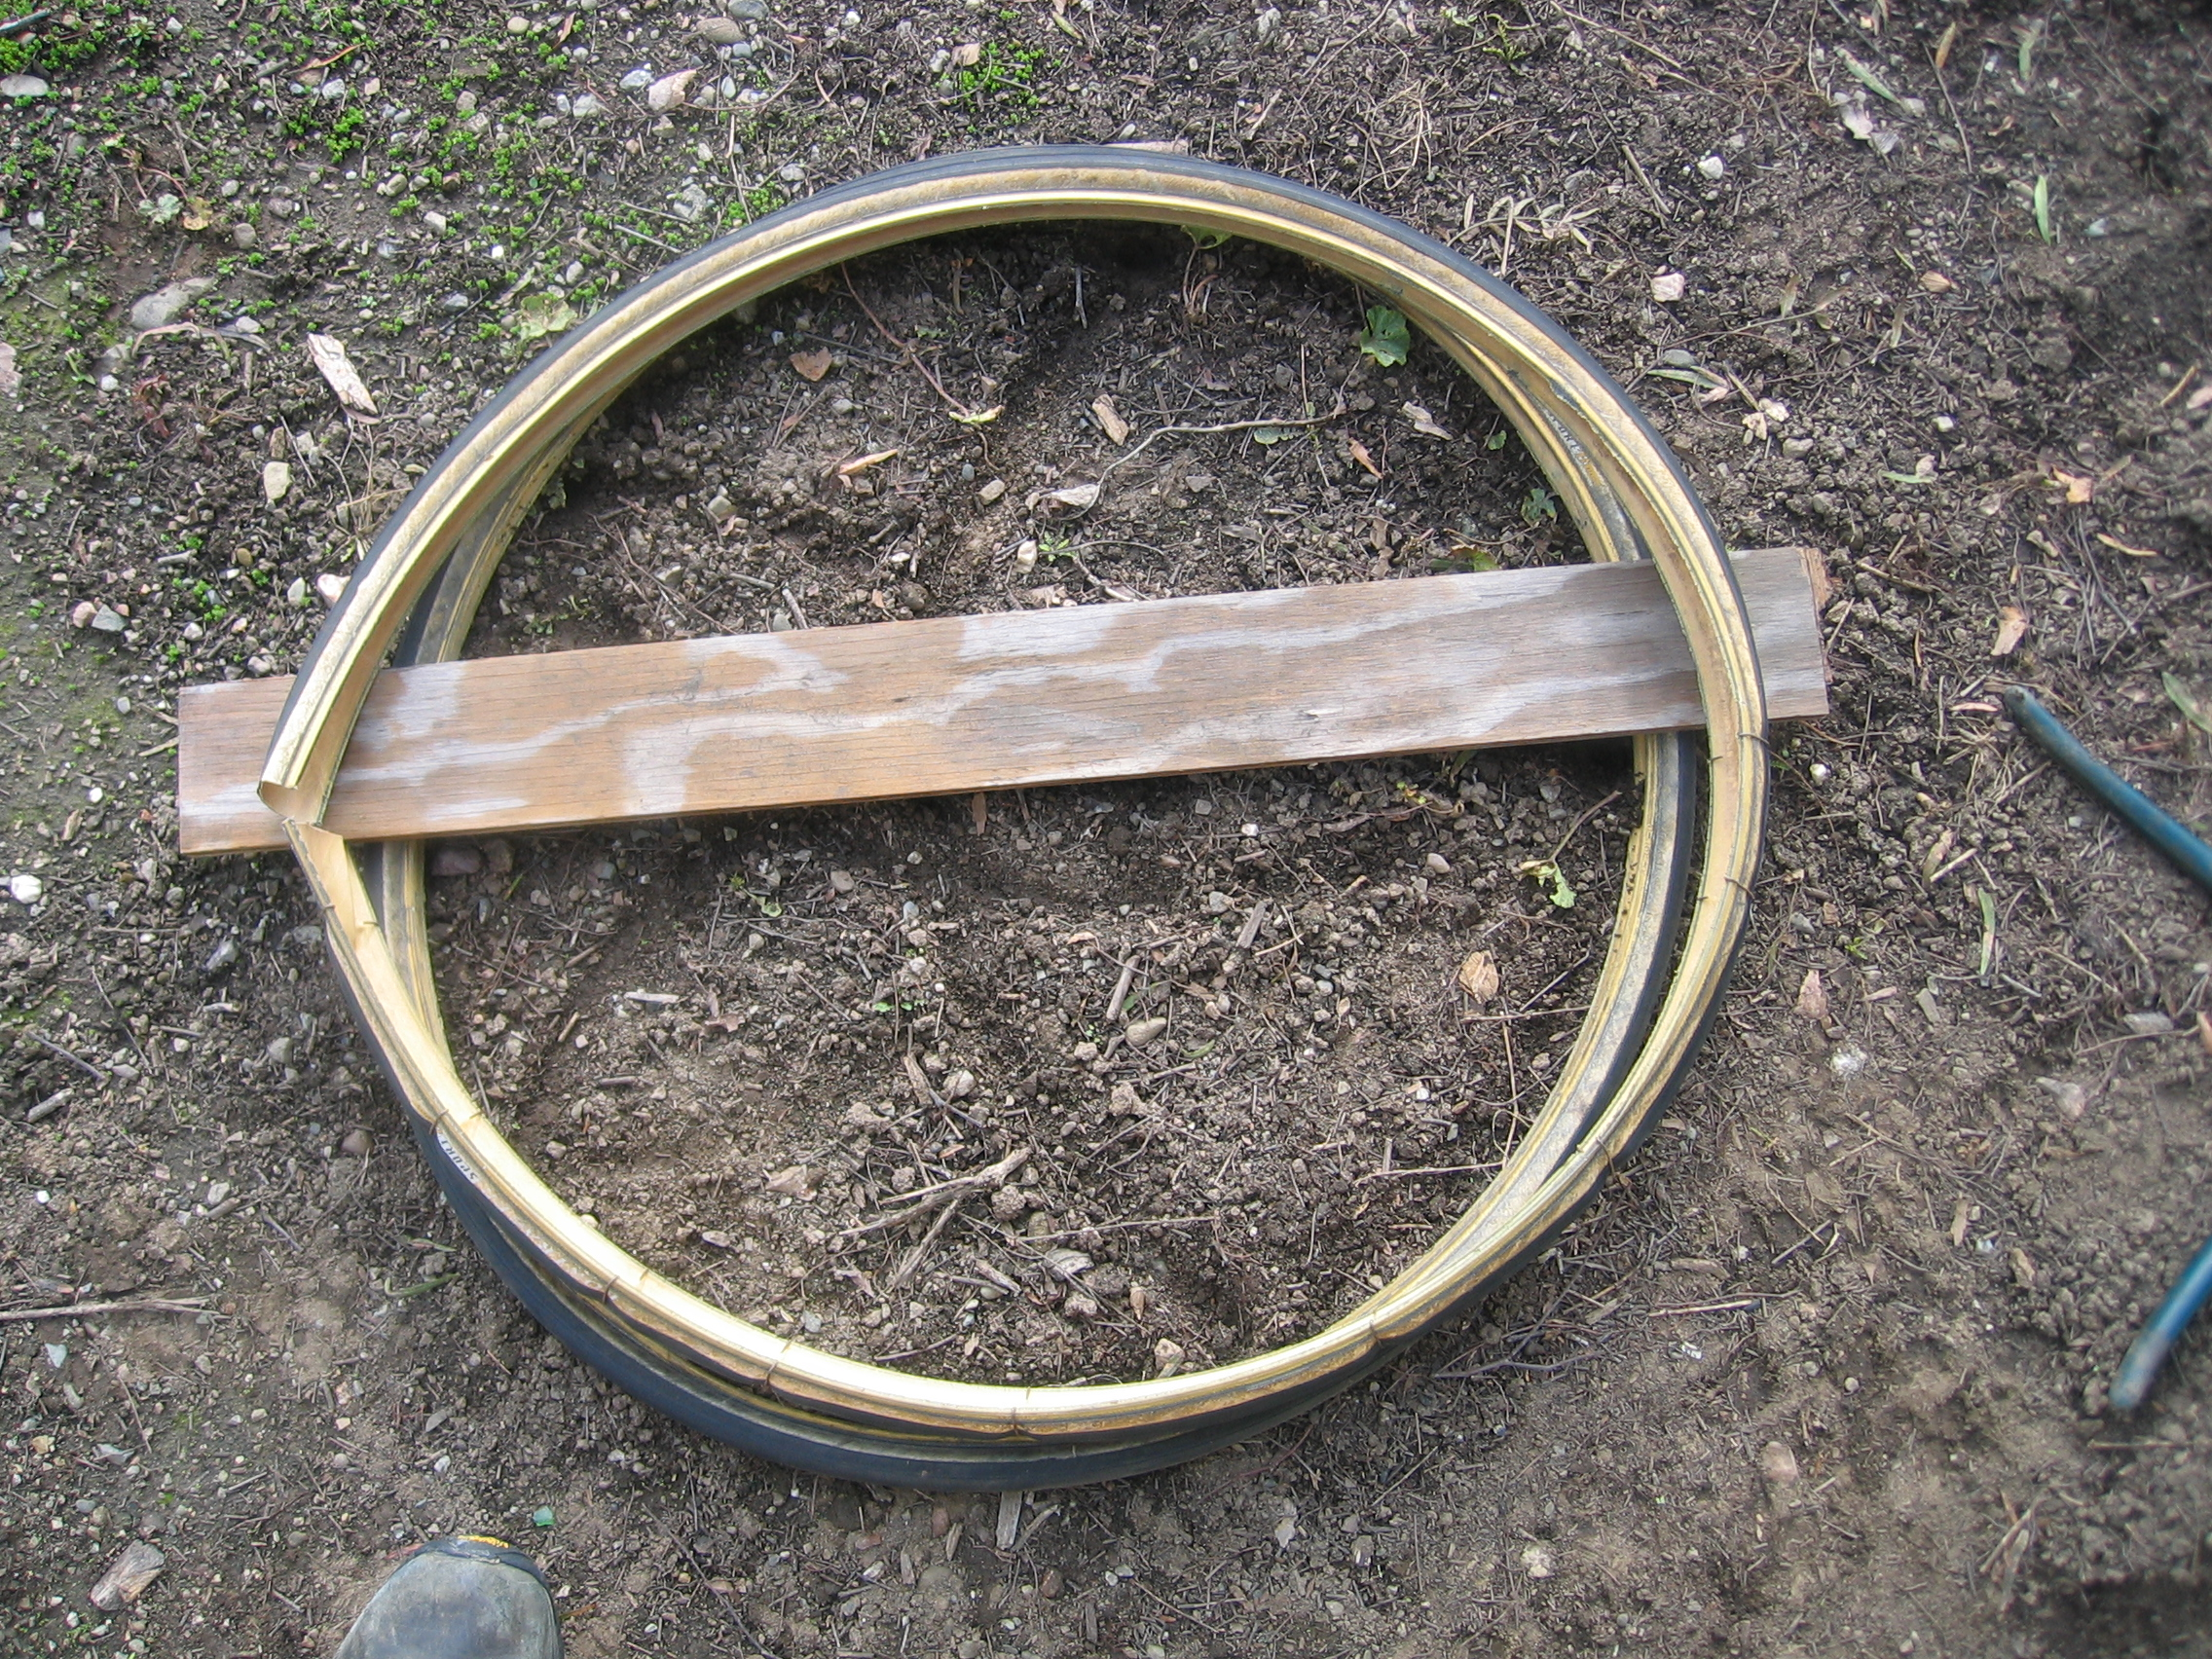 Picture of Recycled Bike Tire As Fender